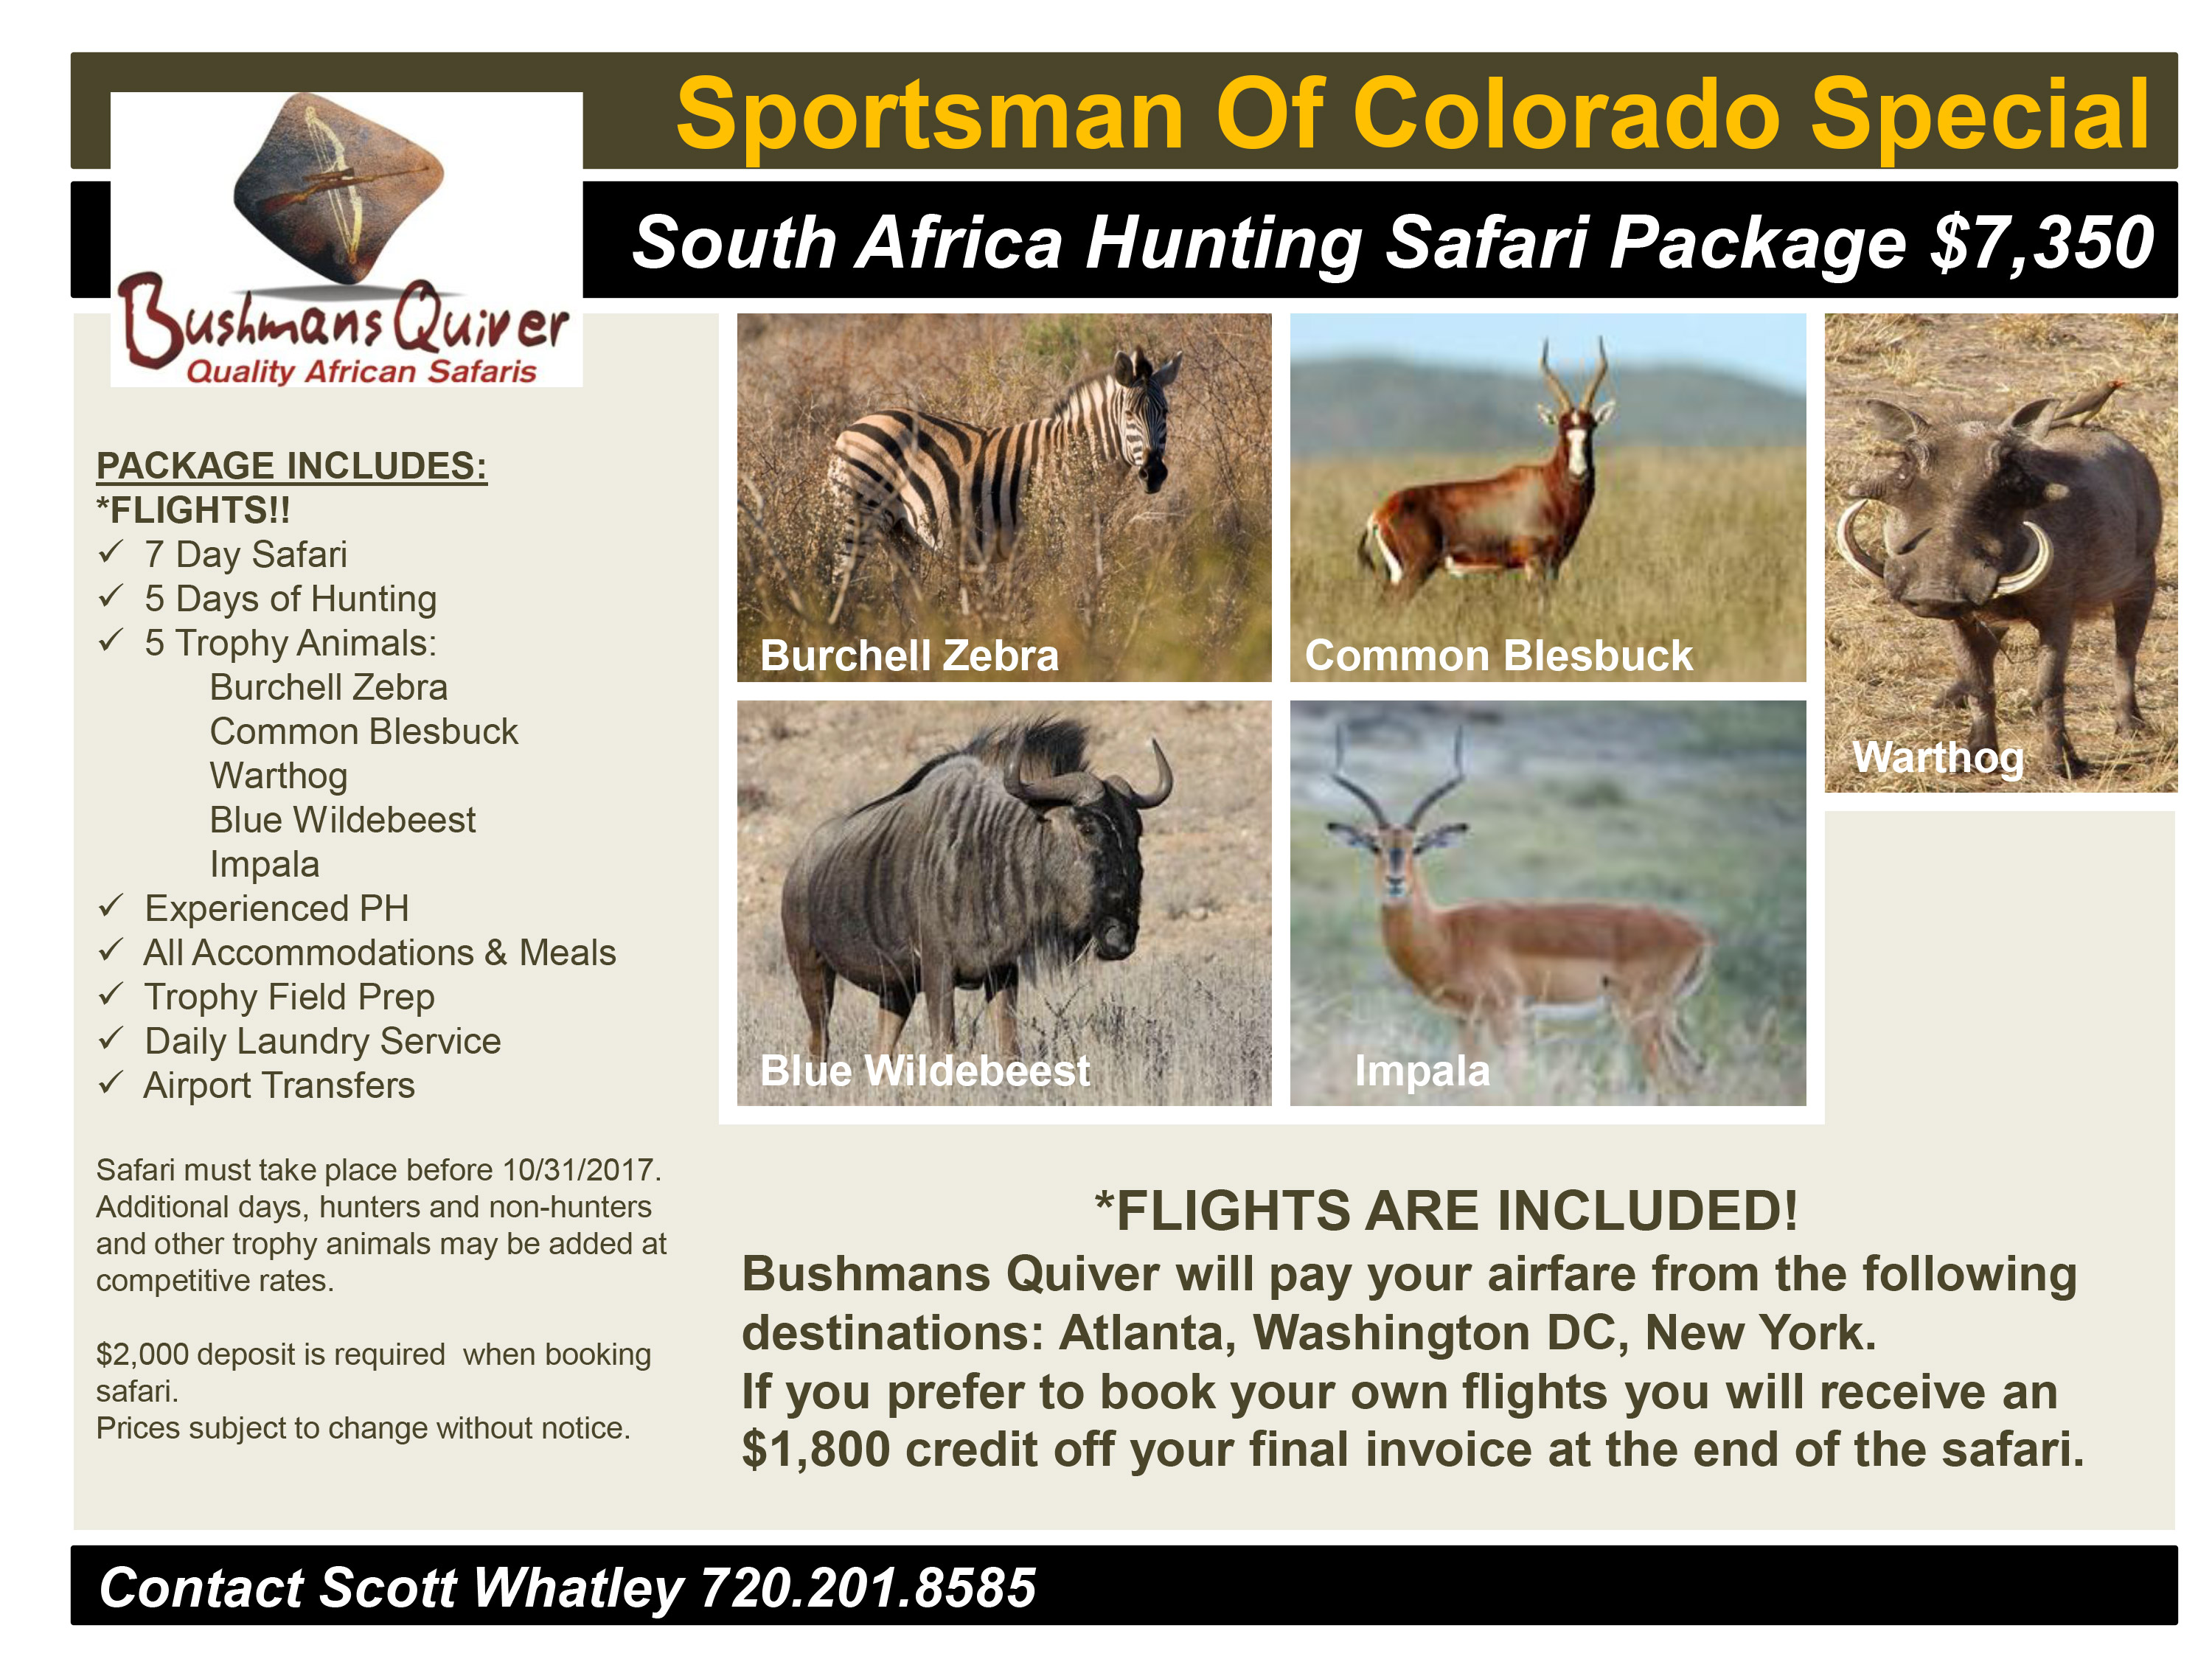 Sportsman Of Colorado South Africa Hunting Special Package 2